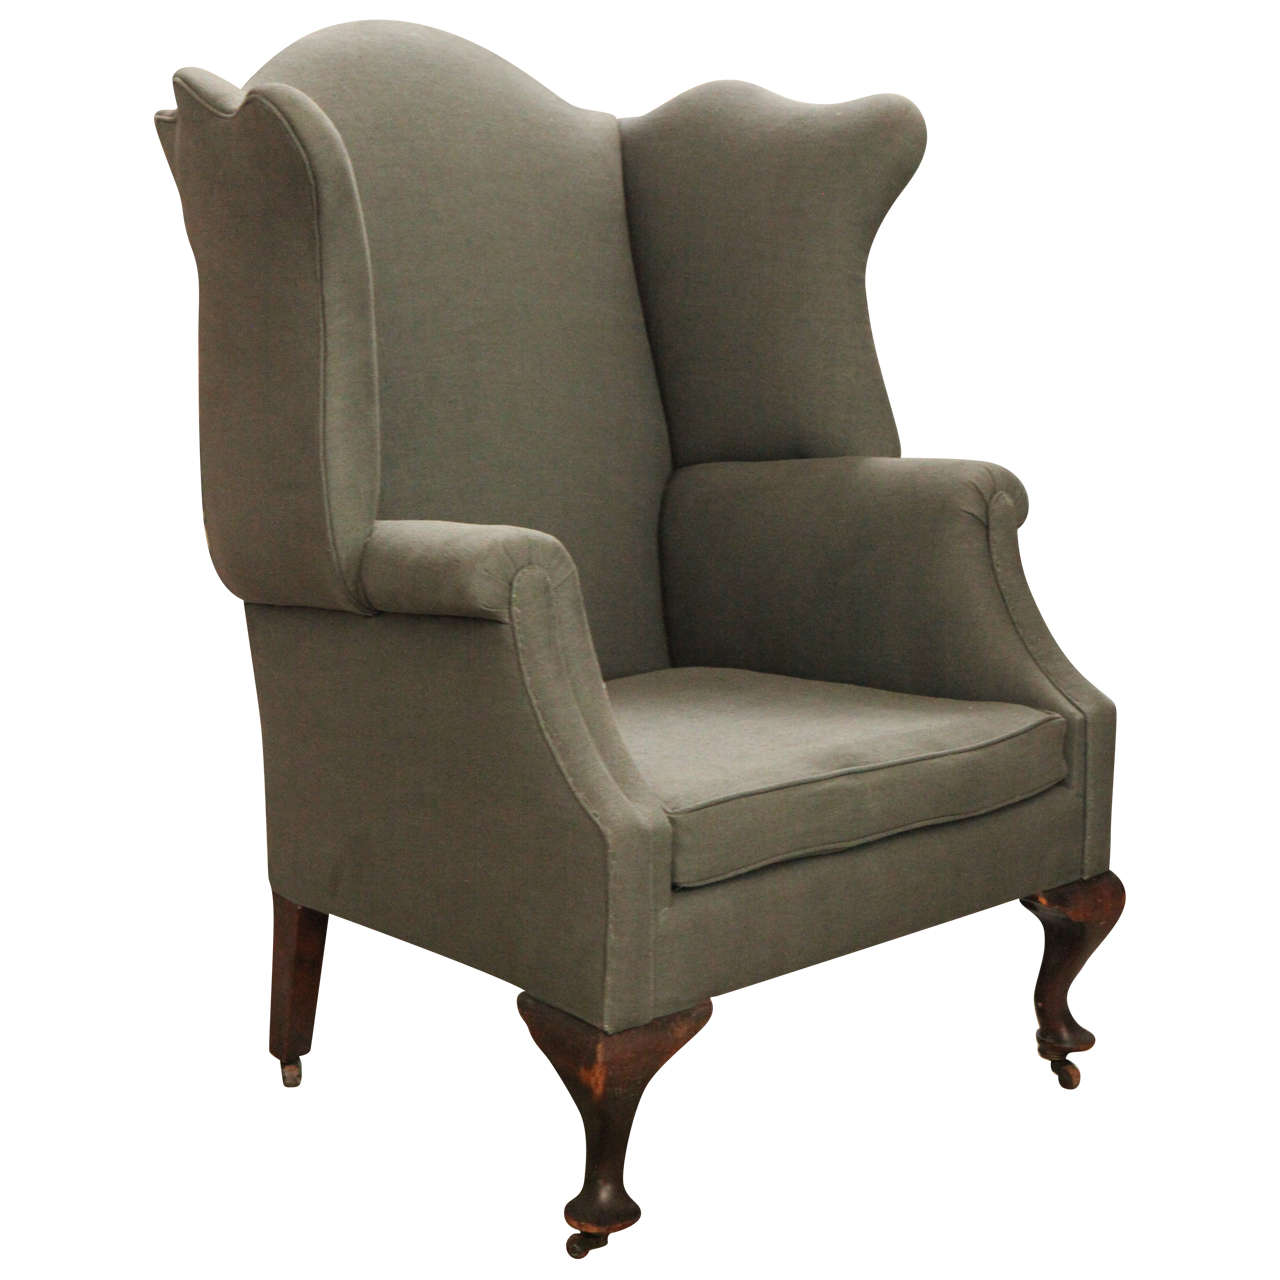 Early American Wingback Chair New England Late 18th